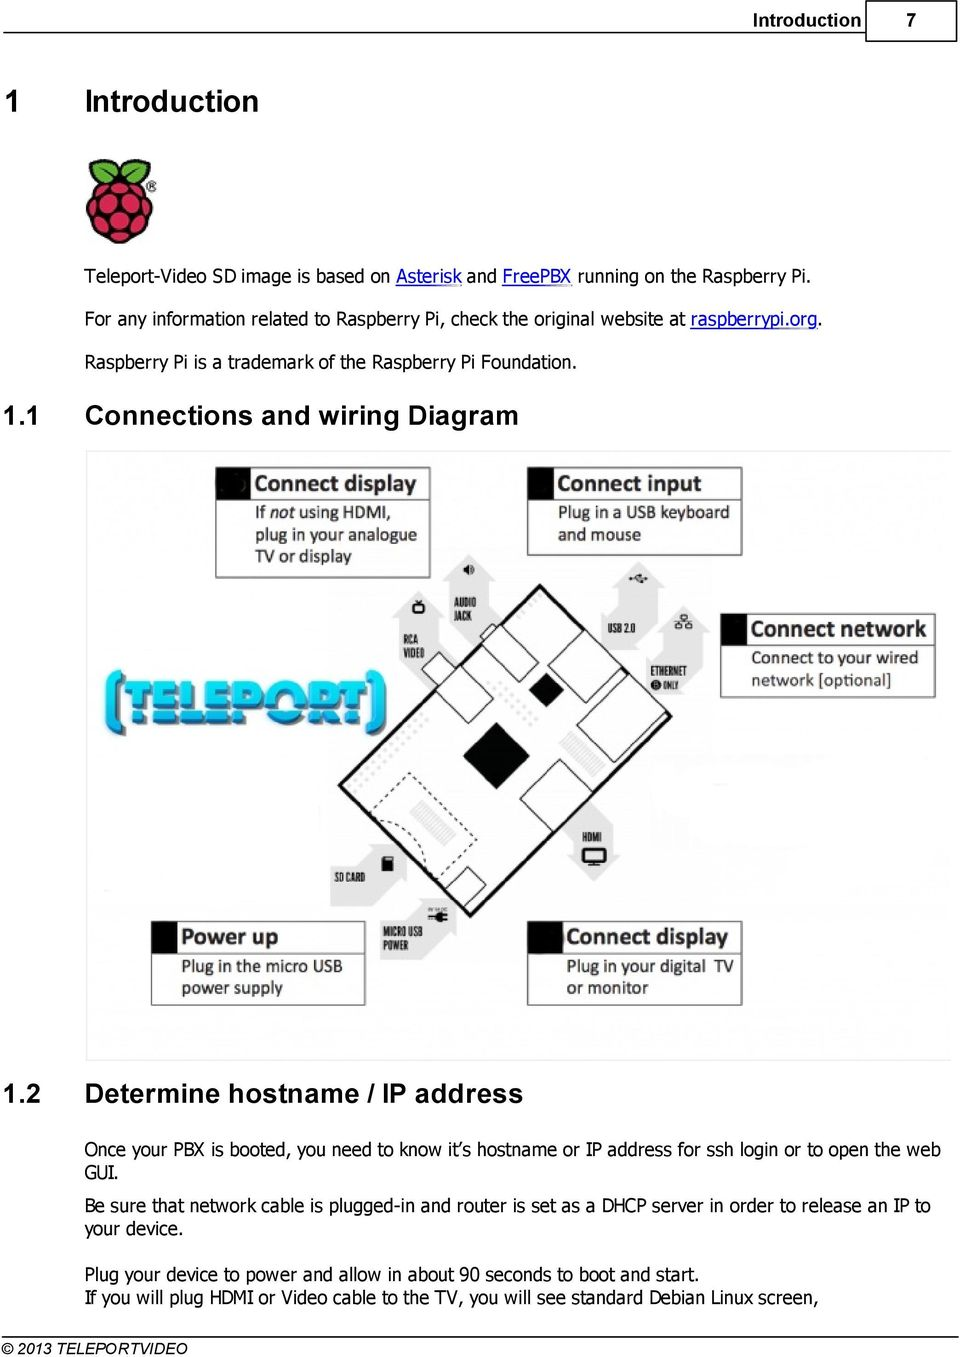 Connections And Wiring Diagram Pdf Wired Network Cable 1 12 Determine Hostname Ip Address Once Your Pbx Is Booted